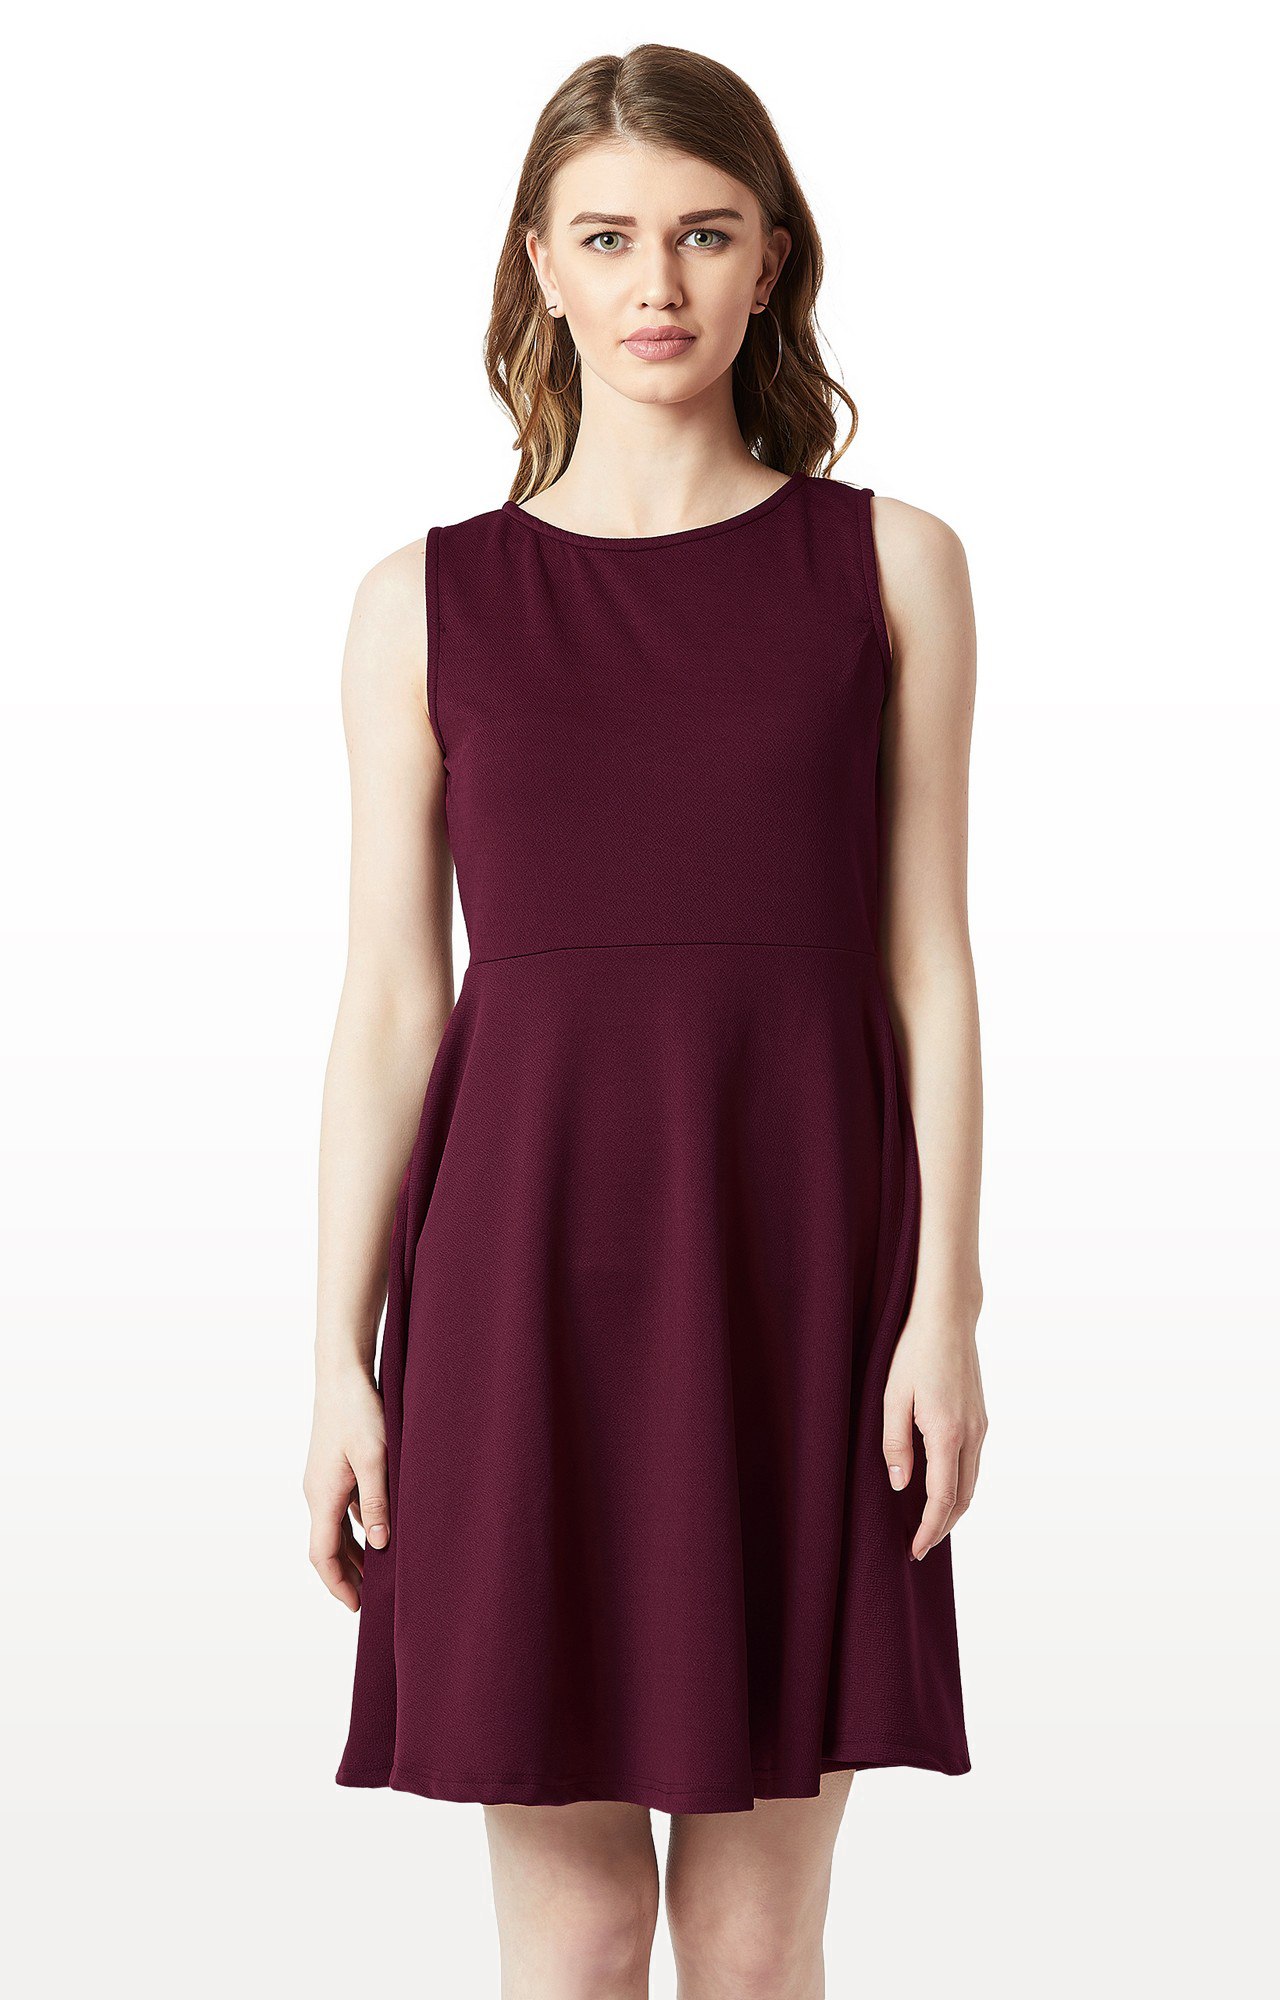 MISS CHASE | Wine Solid Back Cut Out Knitted Knee Long Skater Dress